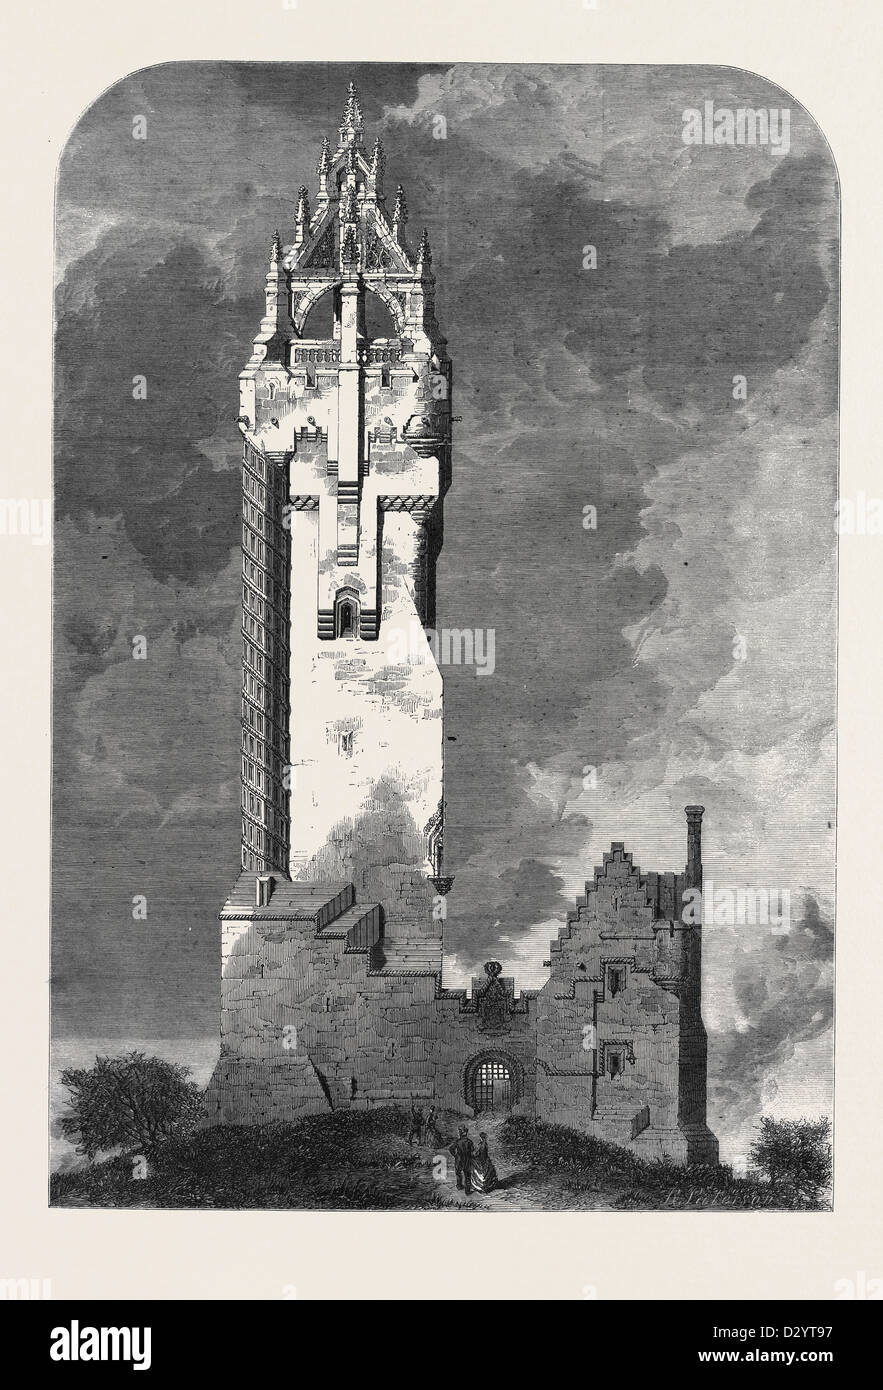 THE NATIONAL WALLACE MONUMENT ABOUT TO BE BUILT ON THE ABBEY CRAIG NEAR STIRLING - Stock Image